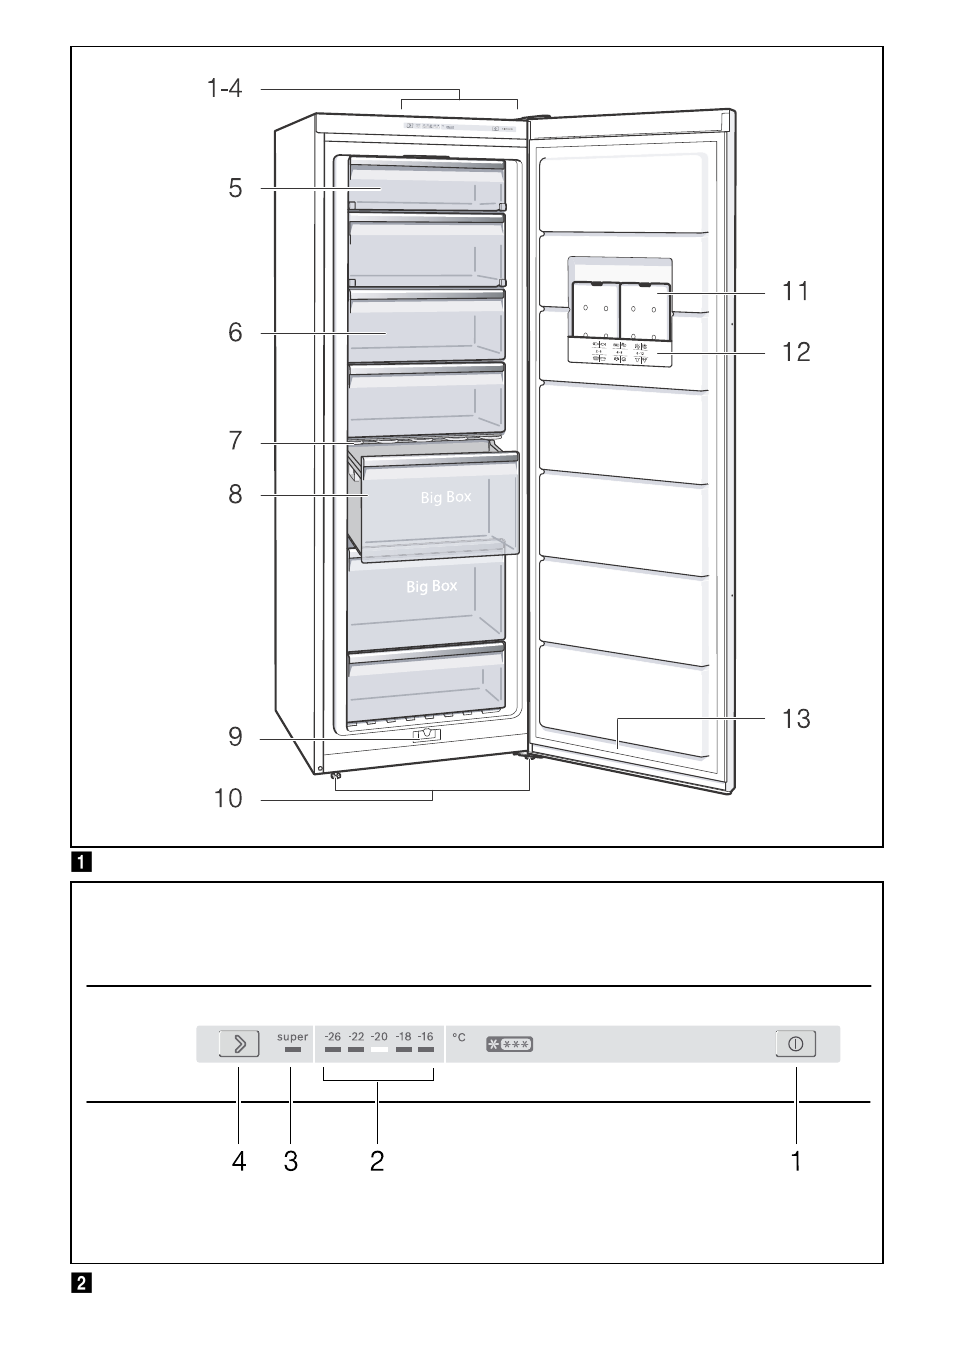 Bosch gsv33vw30 cong lateur armoire confort user manual for Frigidaire armoire